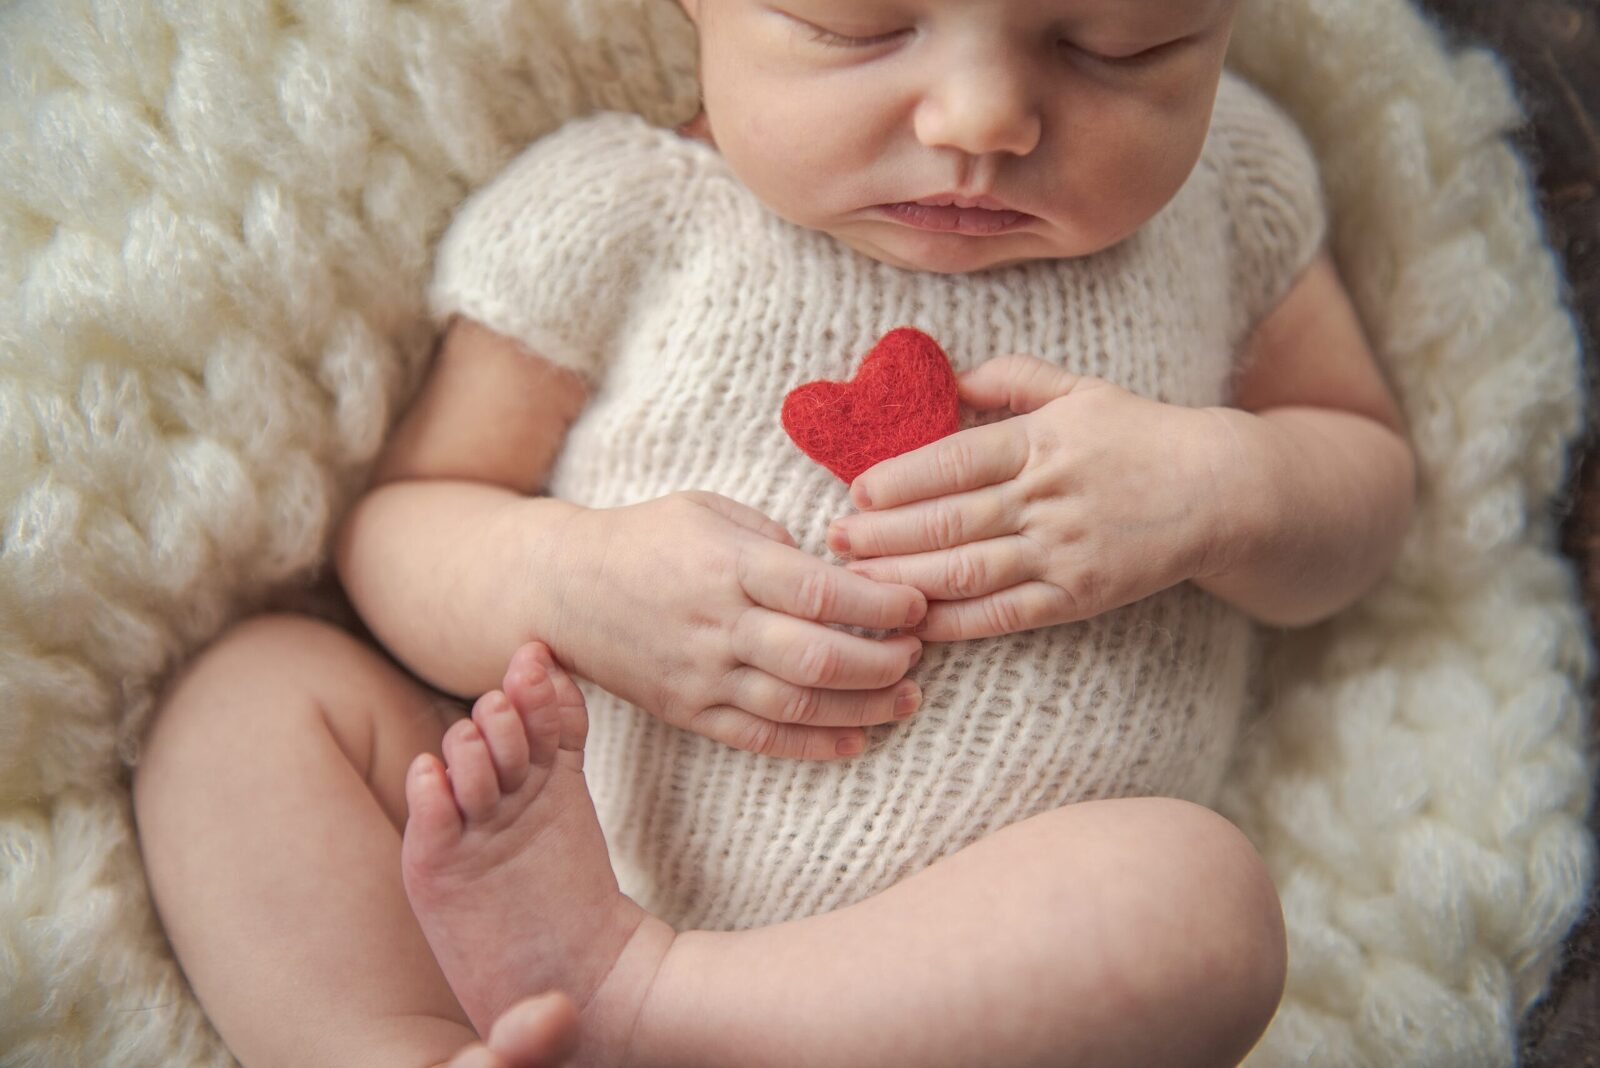 newborn baby girl in bowl holding a red felted heart